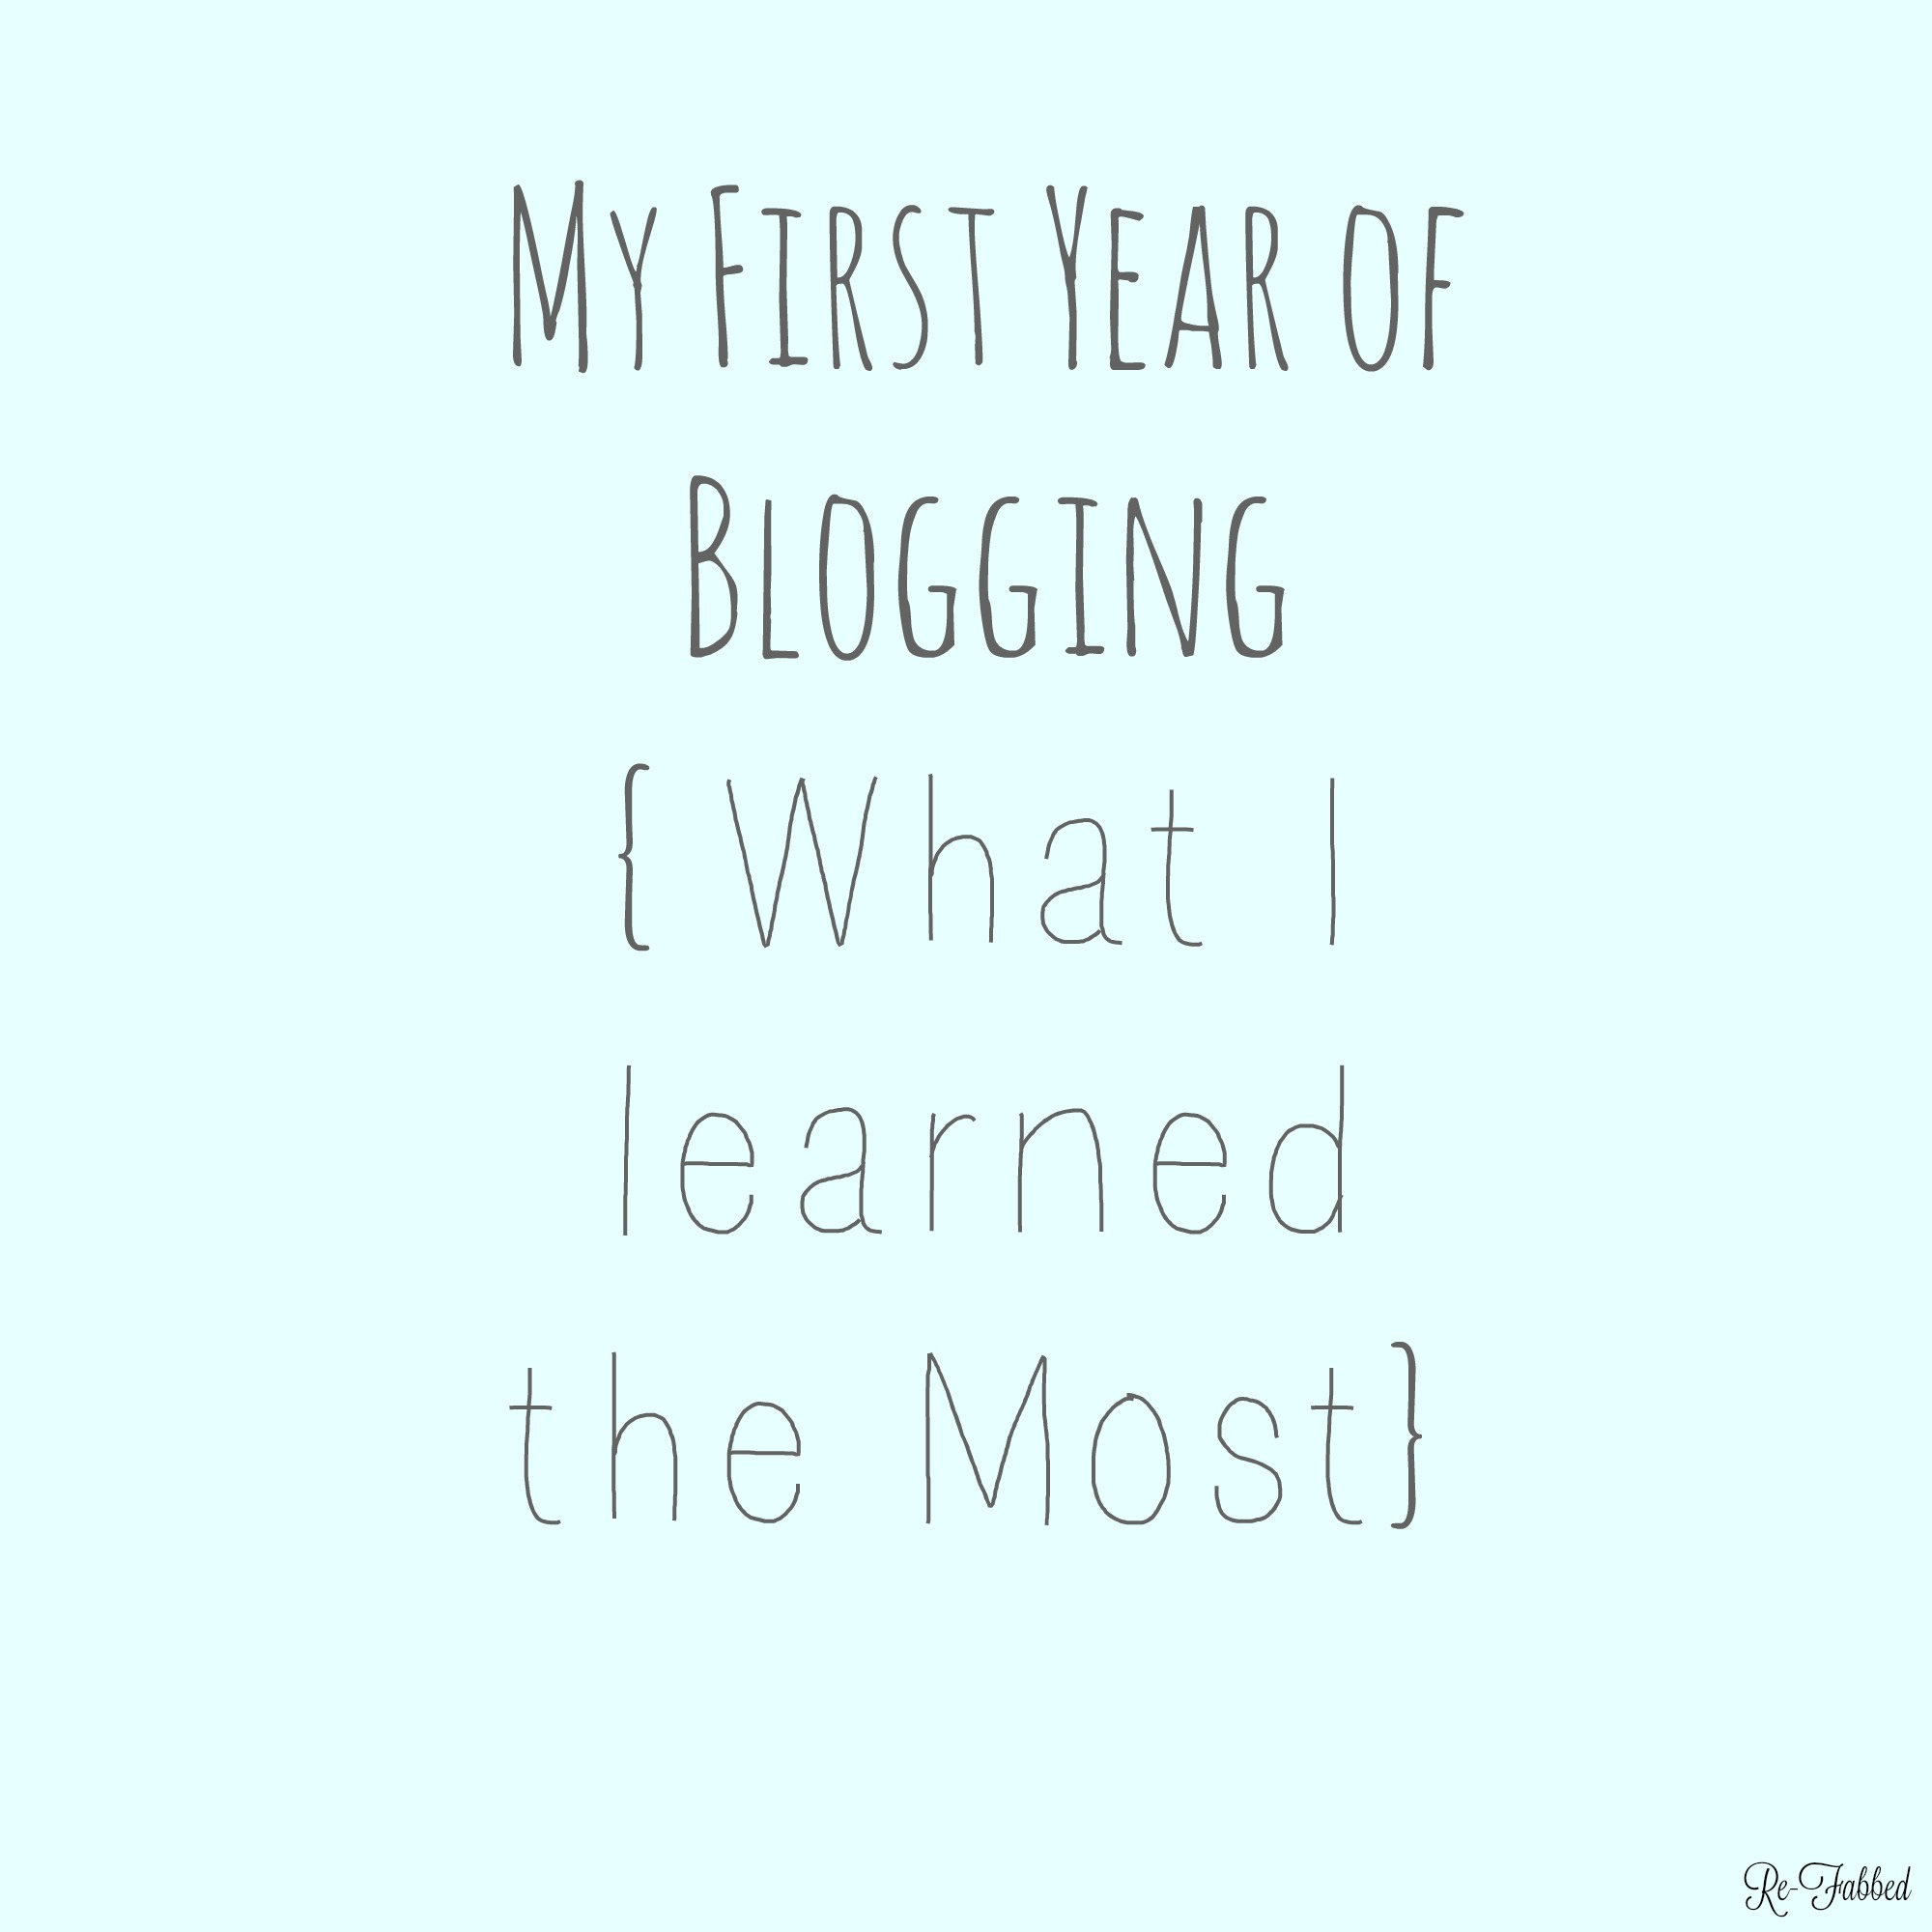 My First Year of Blogging- What I Have Learned